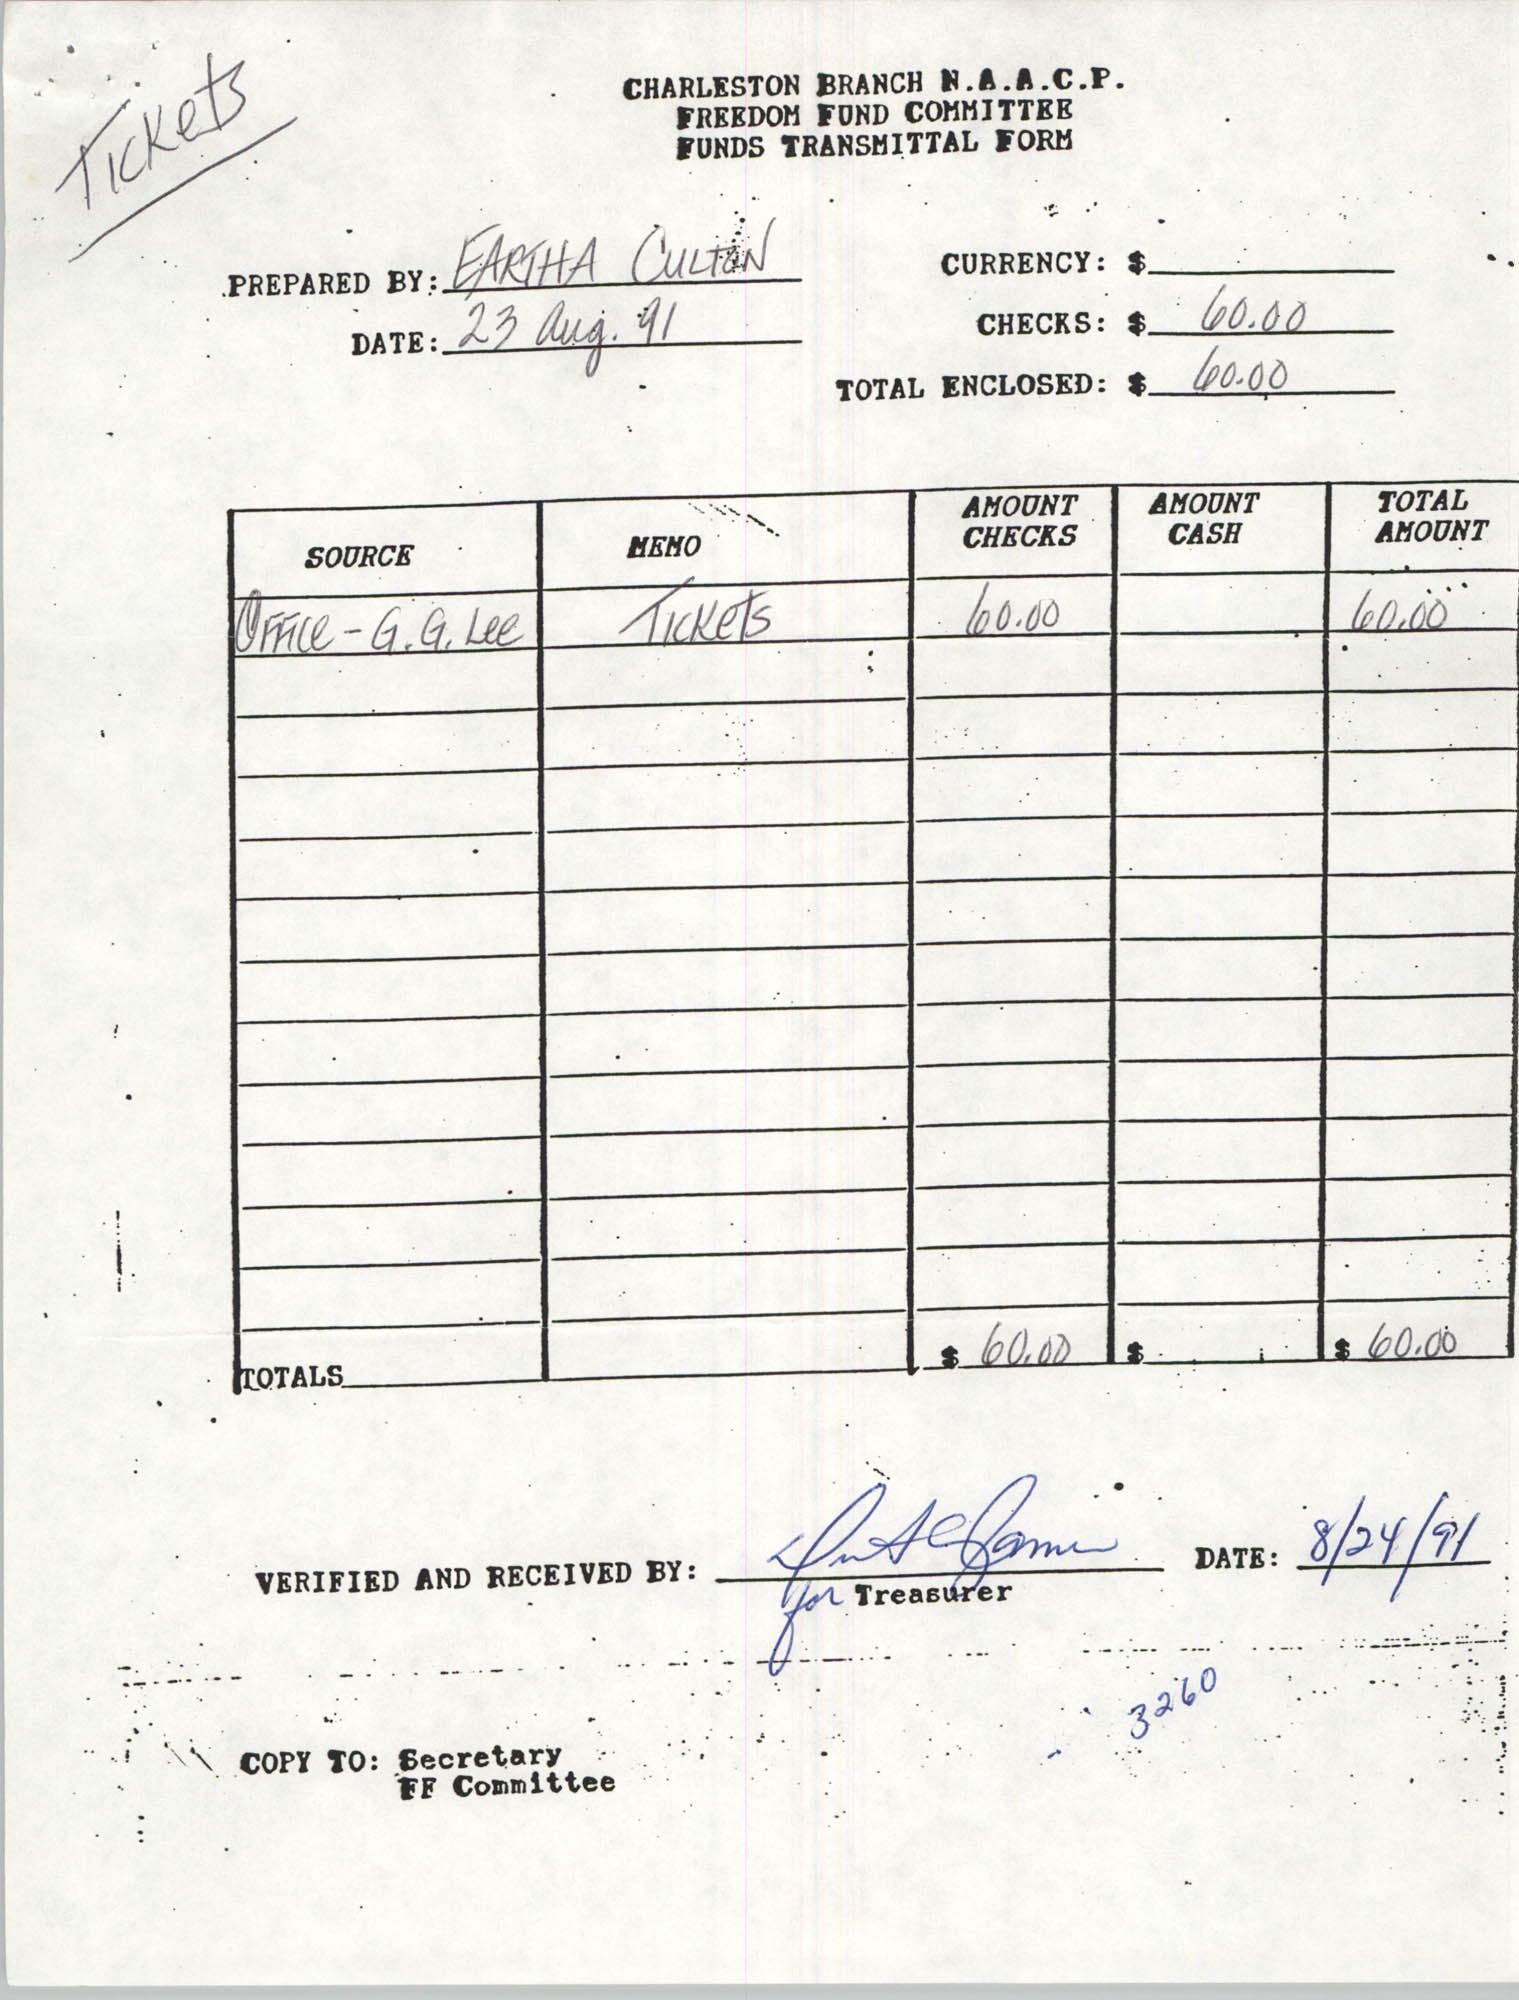 Charleston Branch of the NAACP Funds Transmittal Forms, August 1991, Page 28